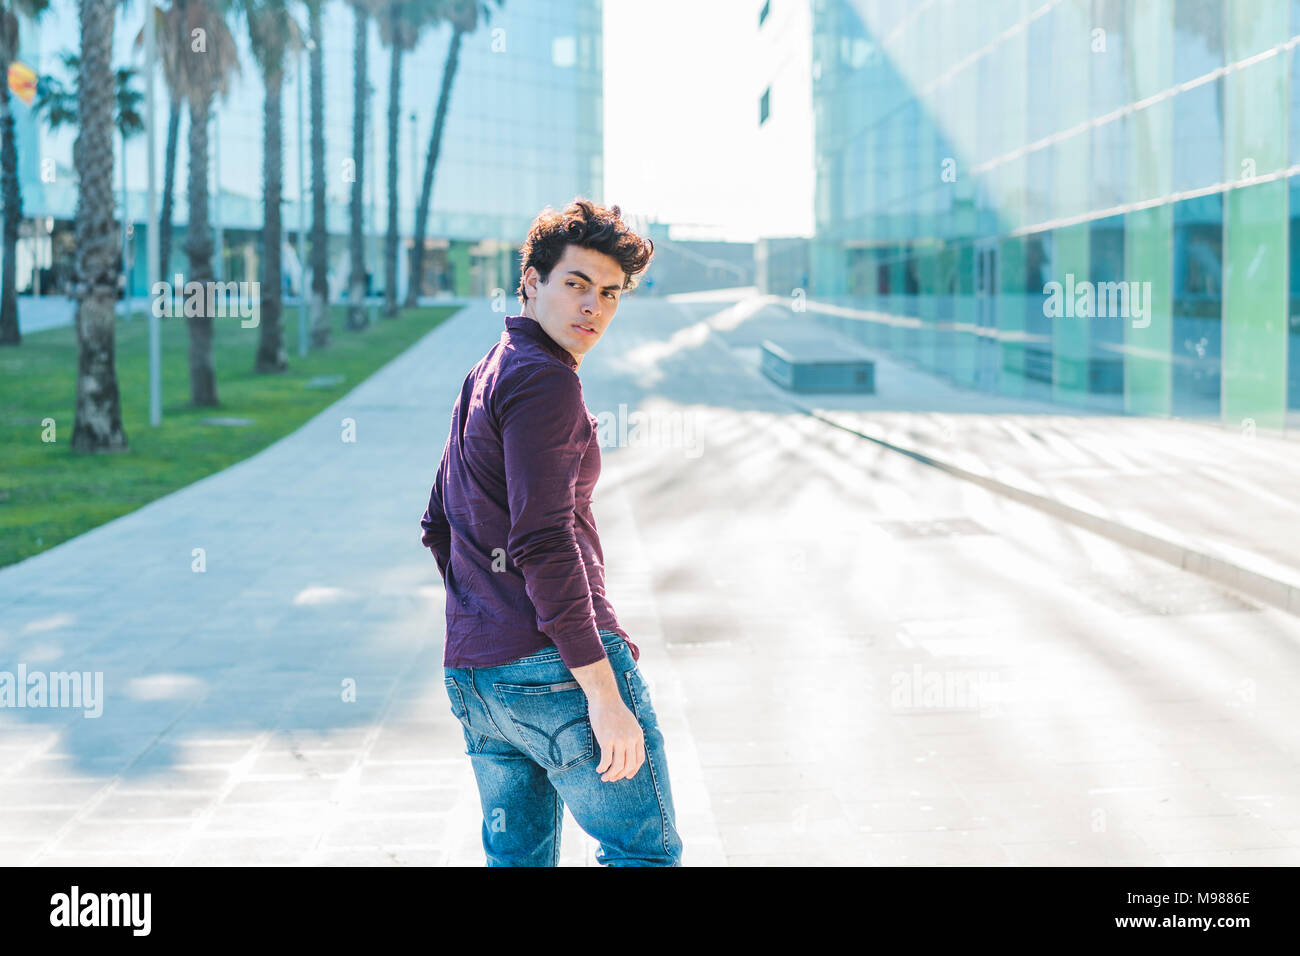 Serious young man walking in the city turning round - Stock Image